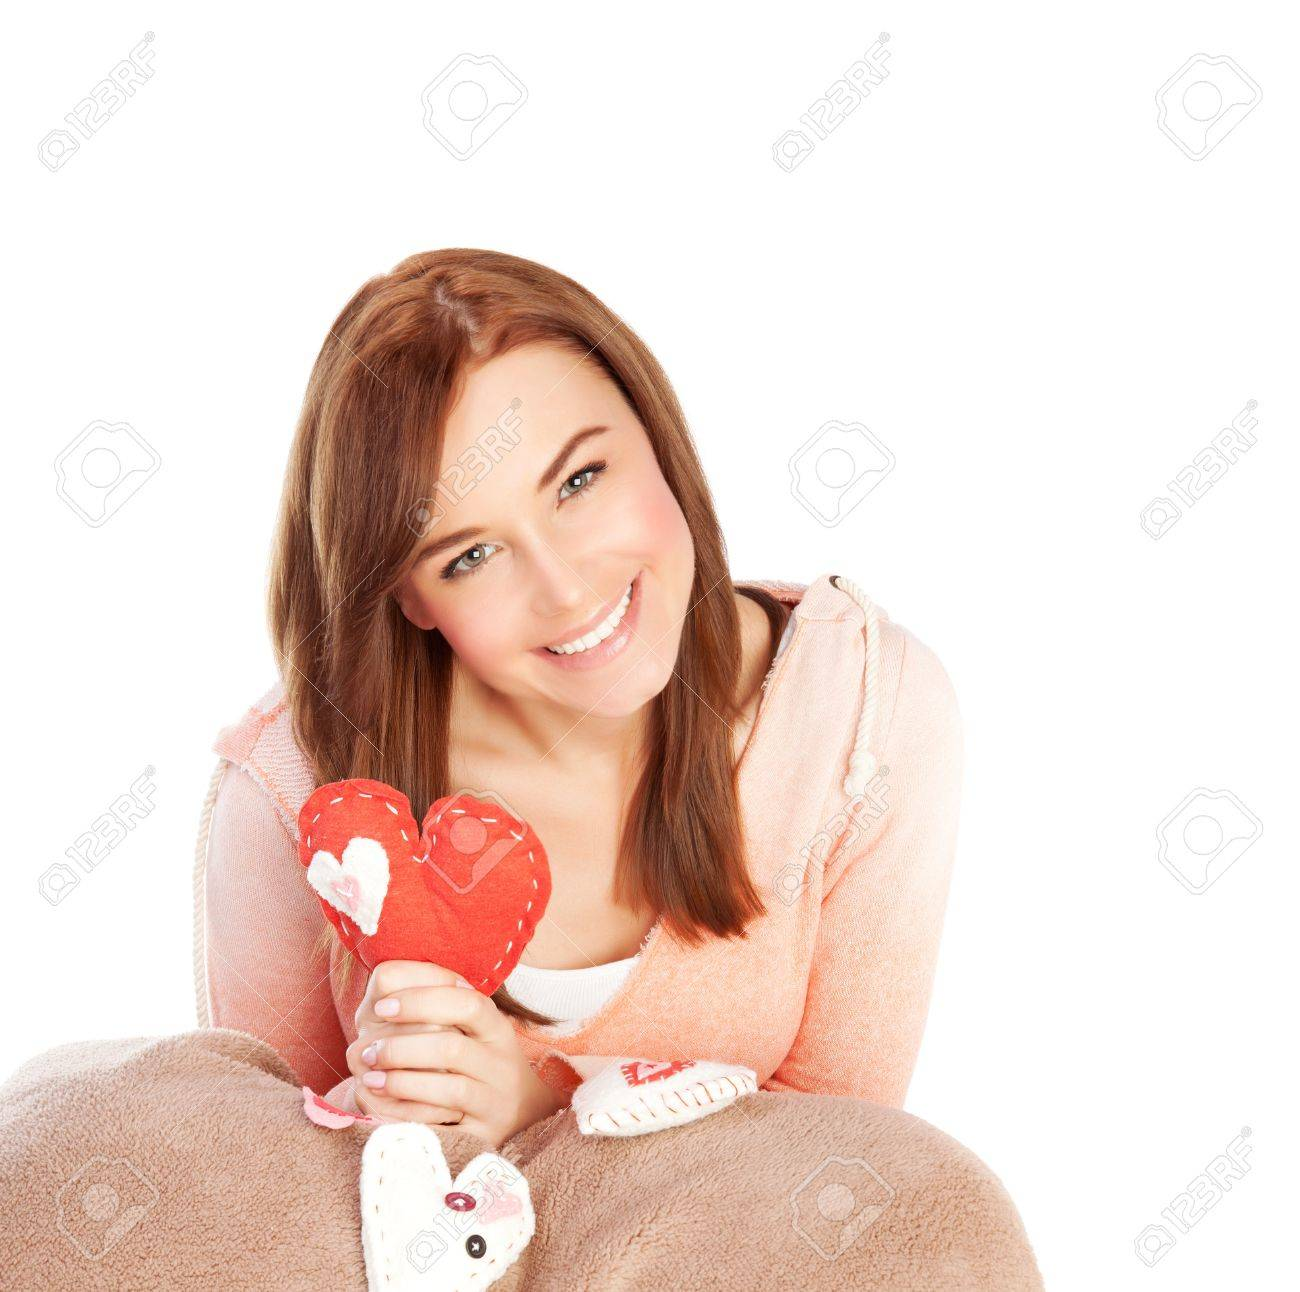 Picture of cute young lady with red handmade heart-shaped soft toy isolated on white background, Valentine day, romantic gift, lovely female, 14 of february, love and happiness concept Stock Photo - 17641580